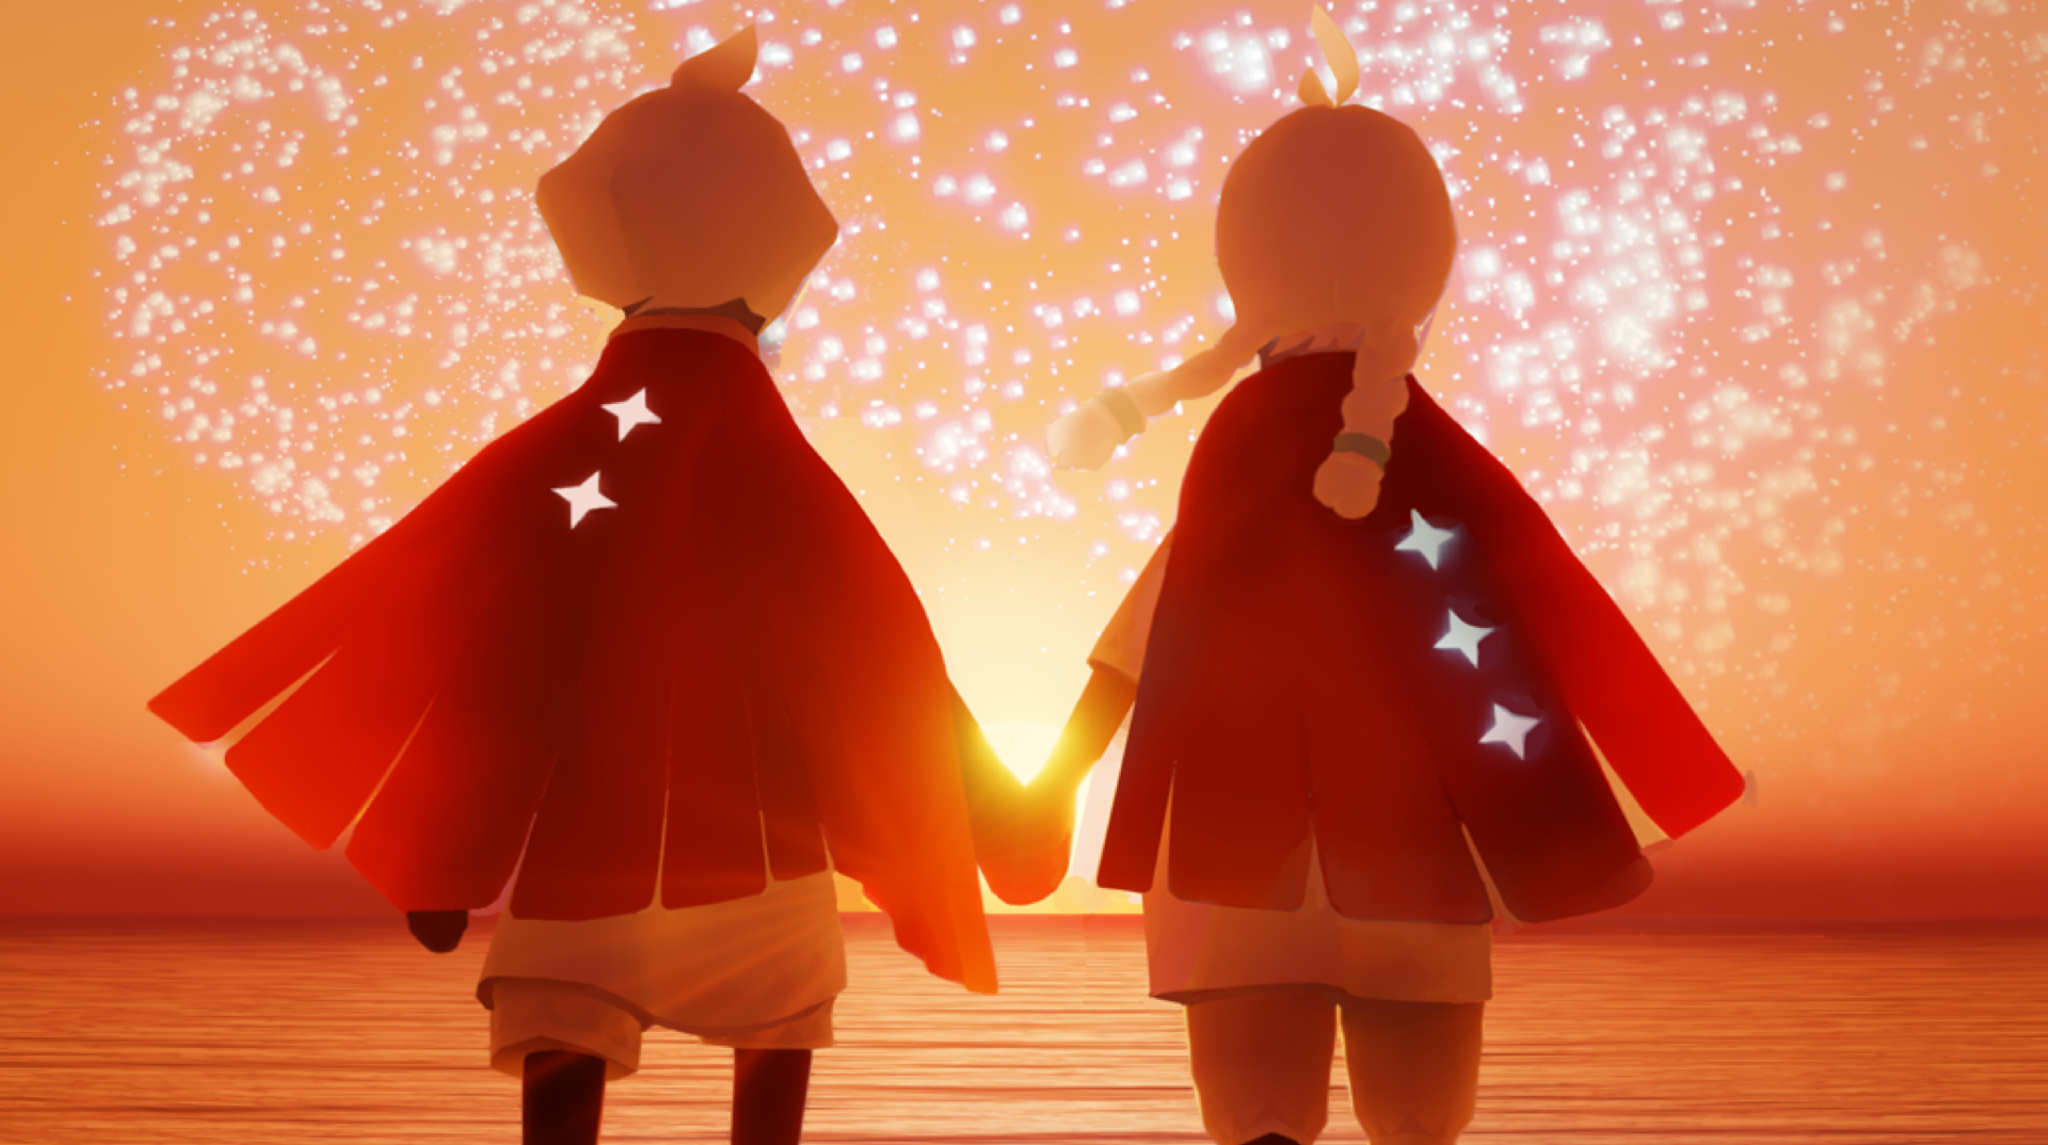 Two protagonists of sky holding hands amidst a sunset